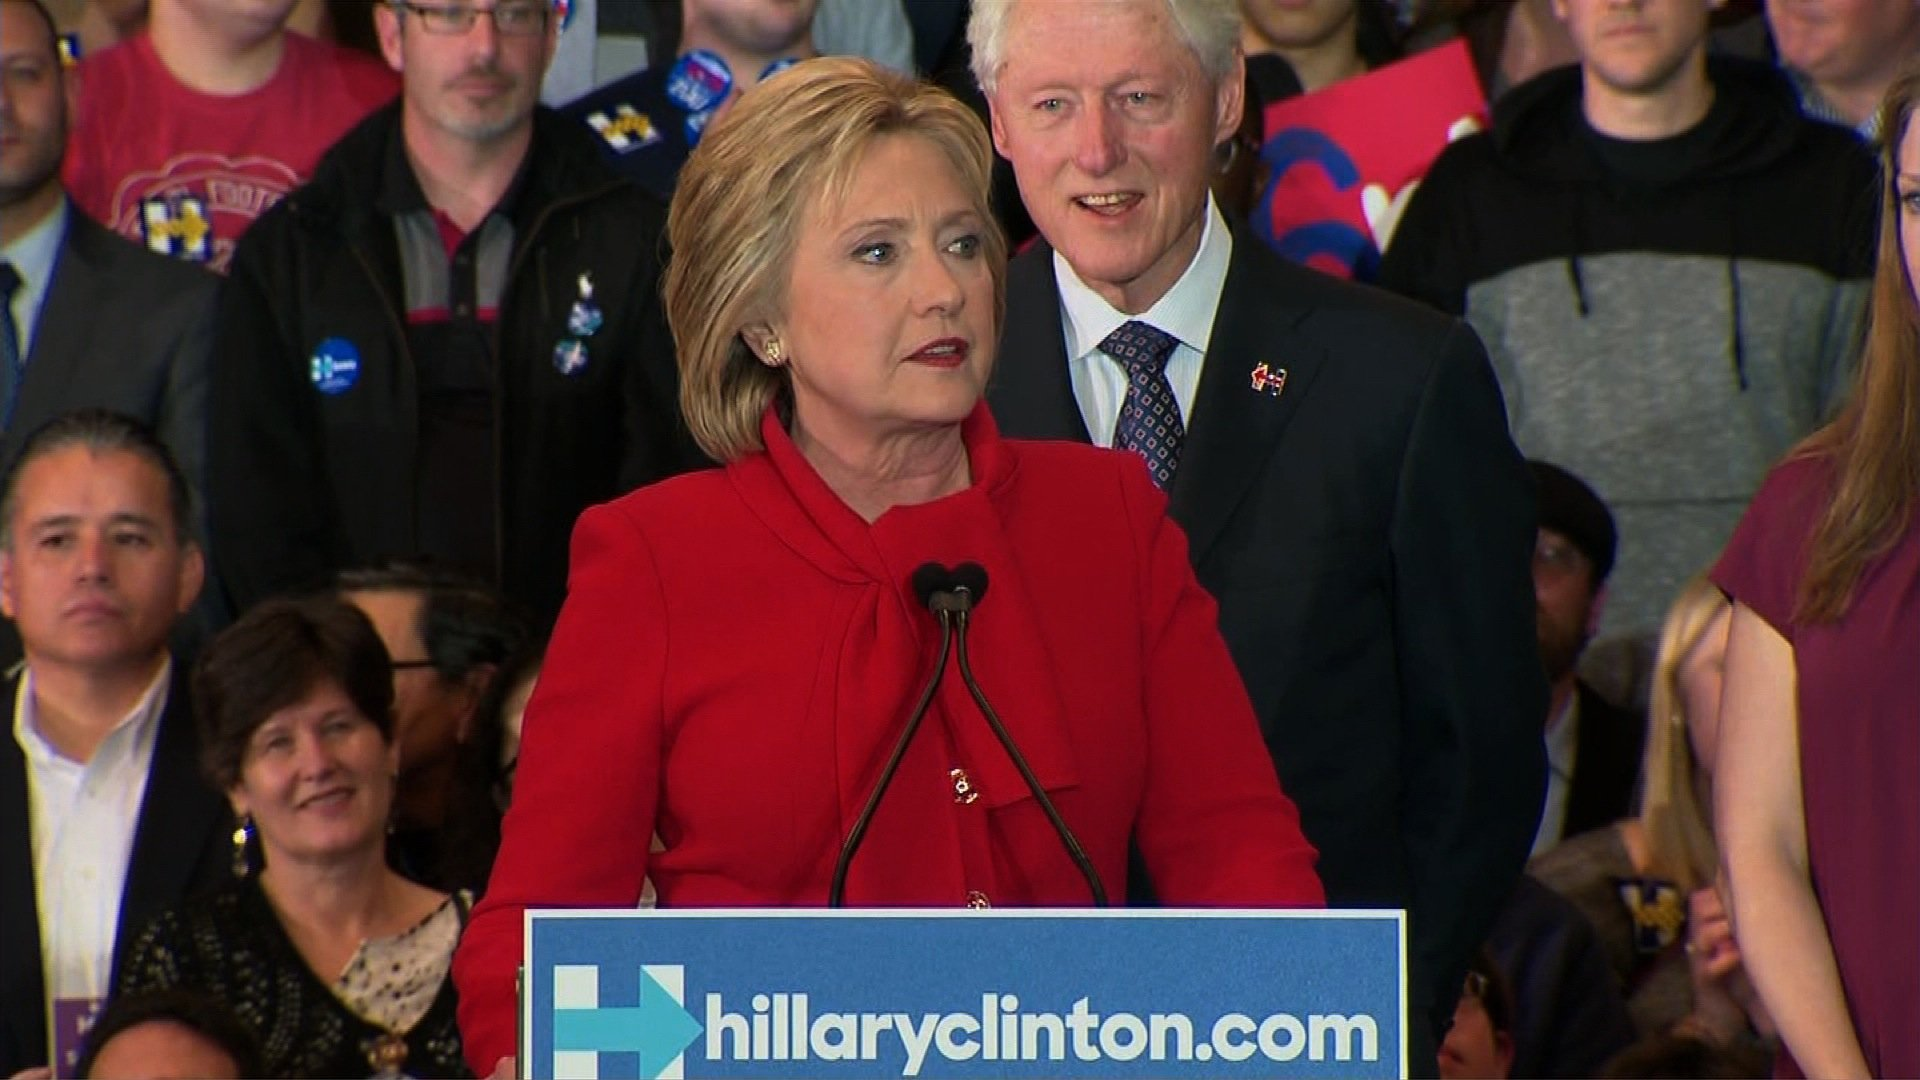 Bill Clinton to Campaign on ASU Campus for Hillary Clinton